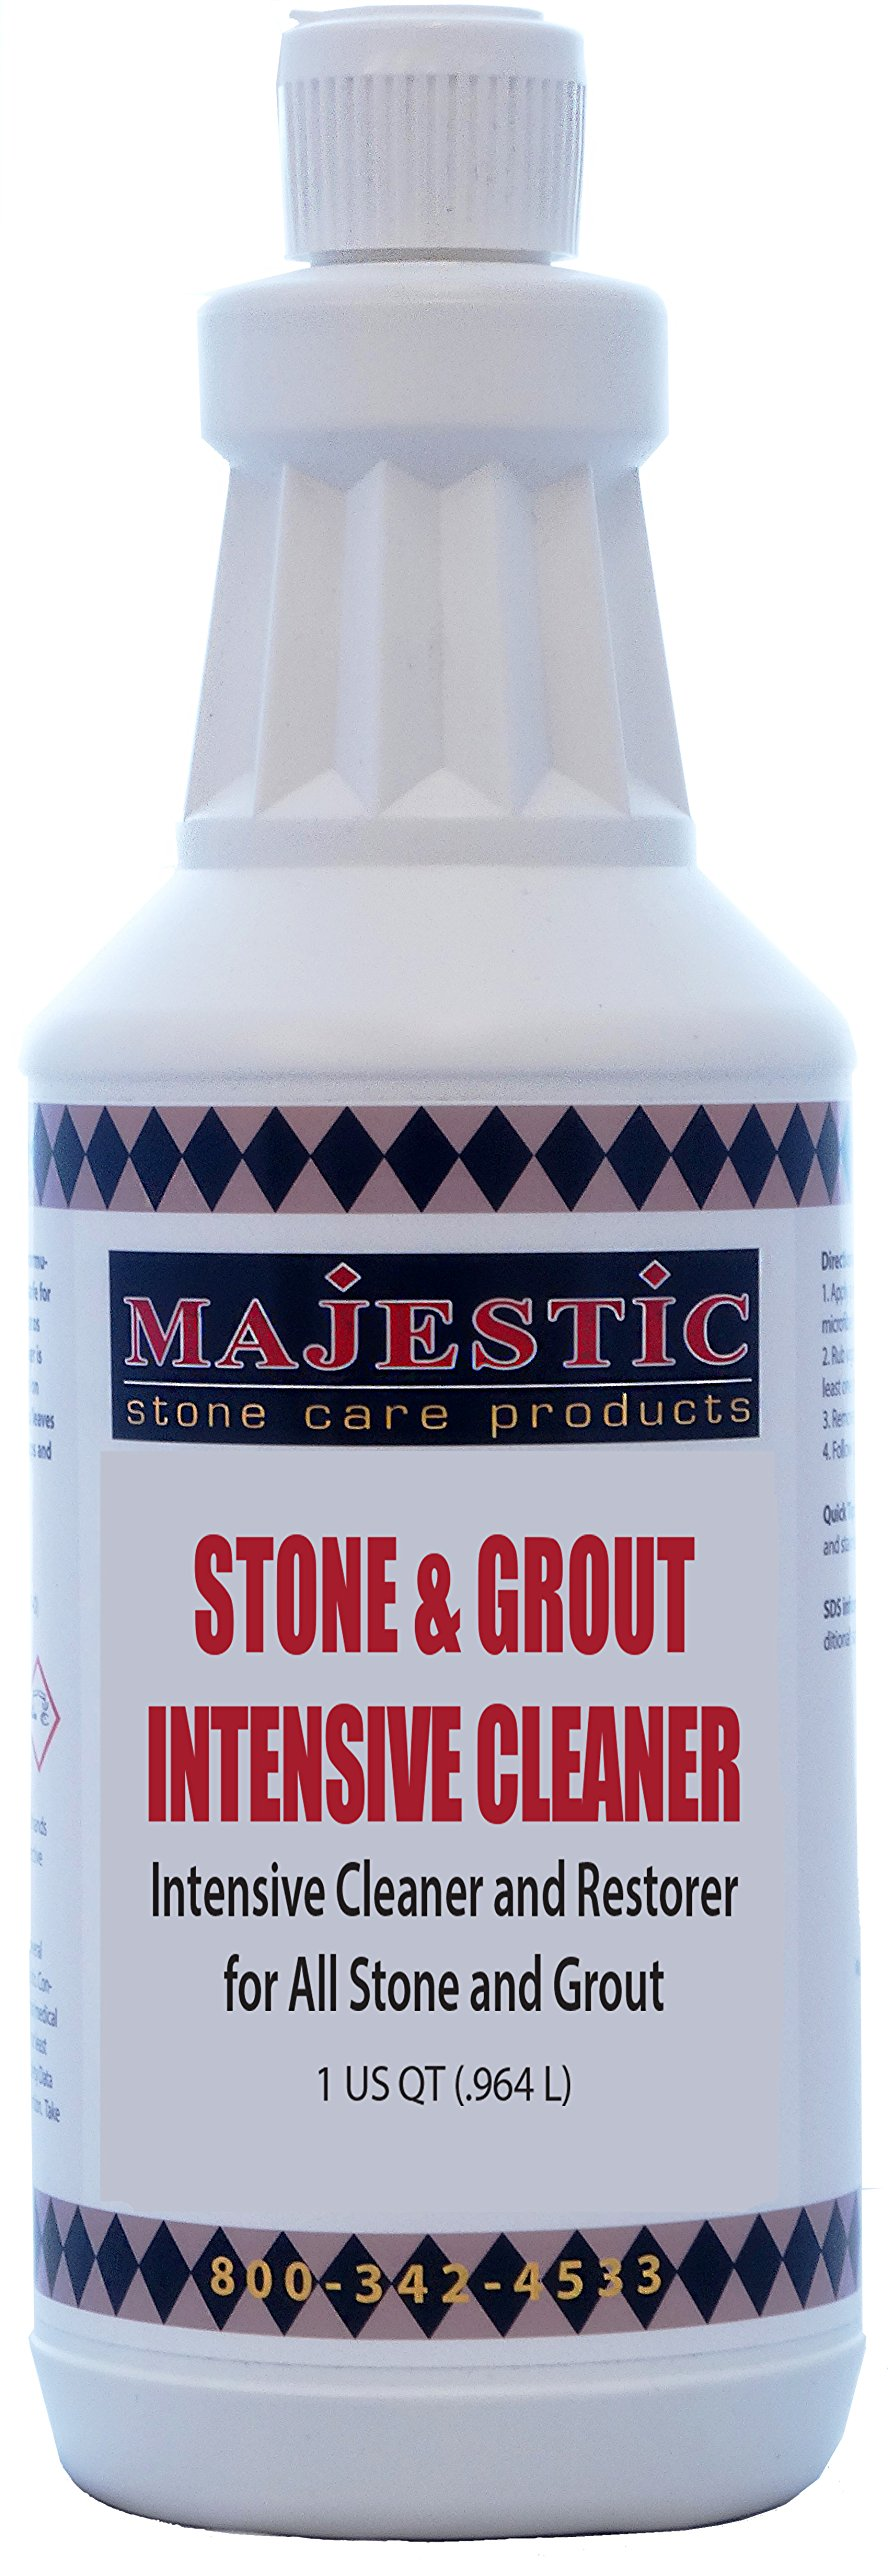 Stone & Grout Intensive Cleaner - Quart